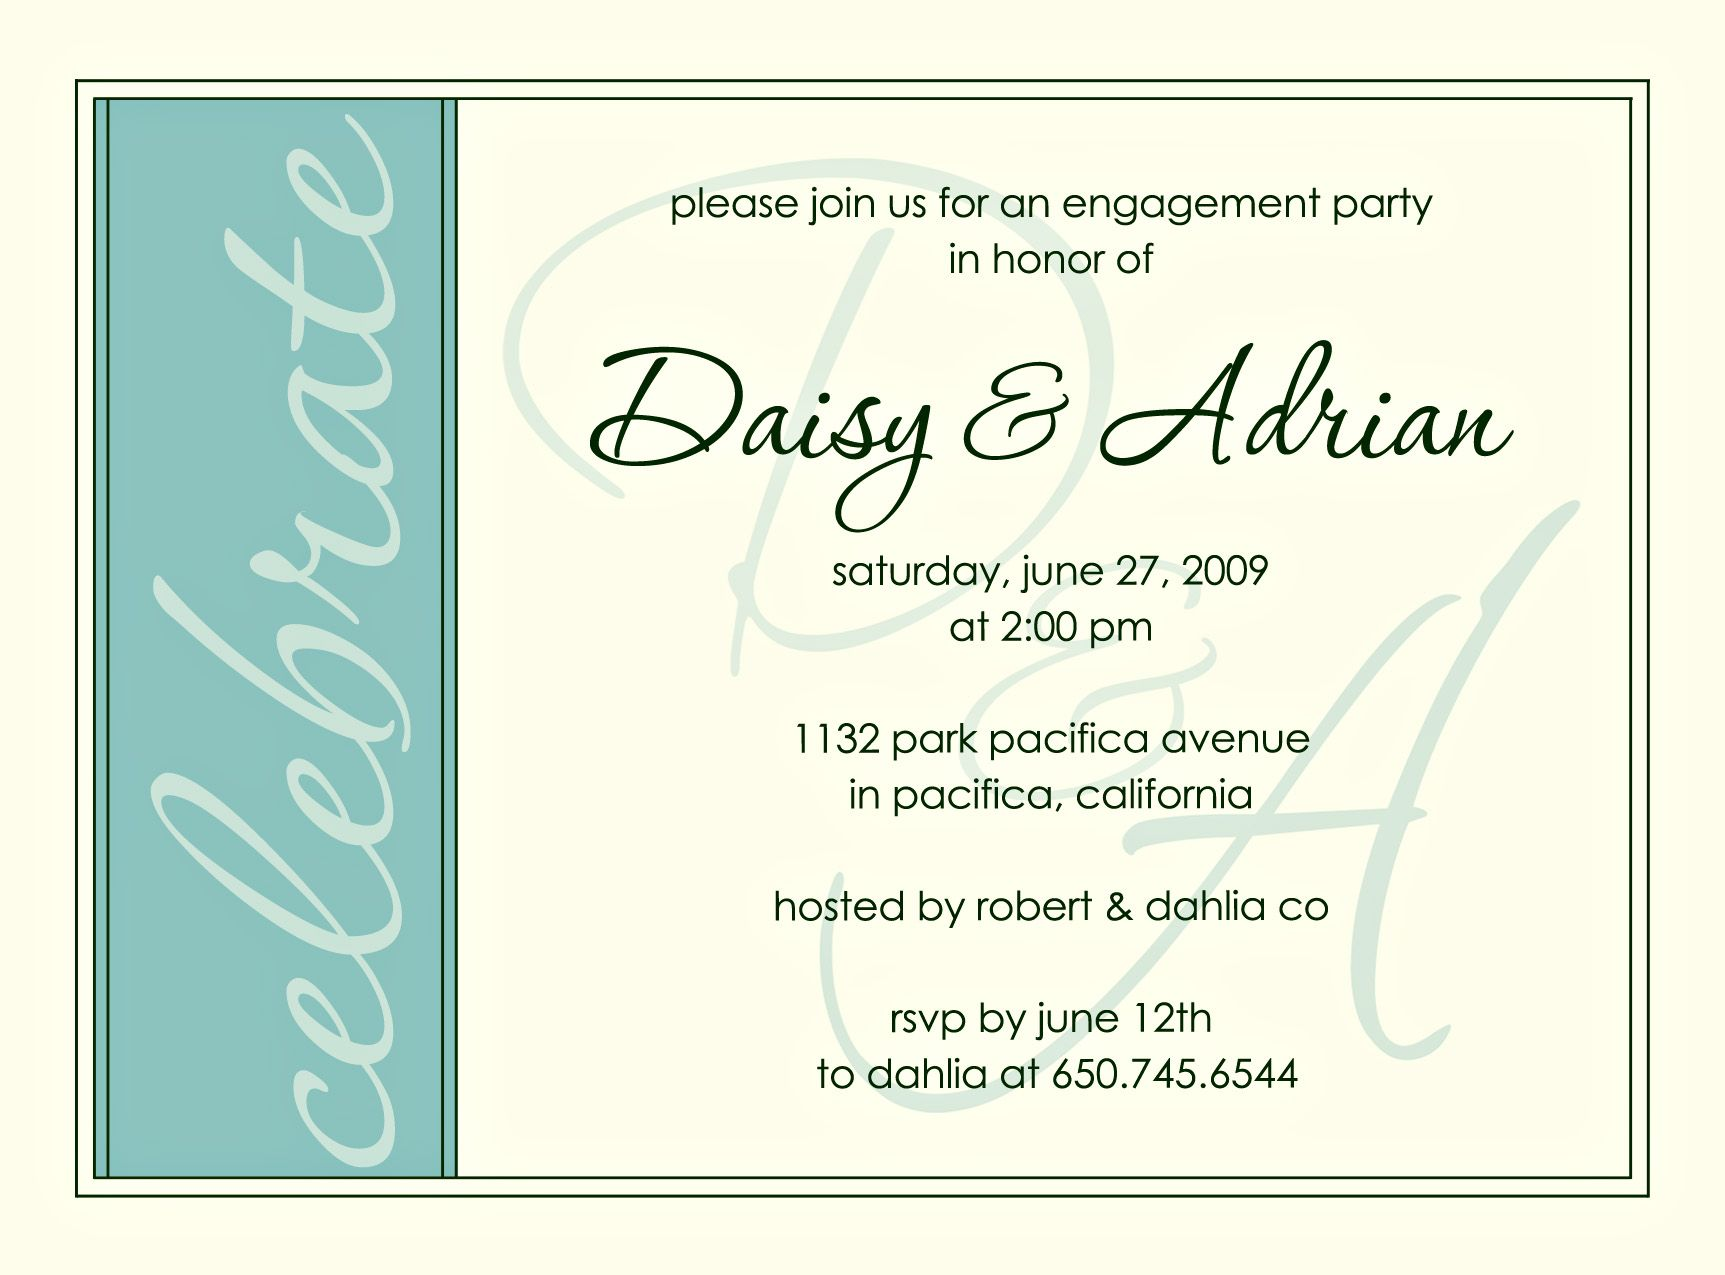 Engagement Party Invite Engagement party invitations and Engagement